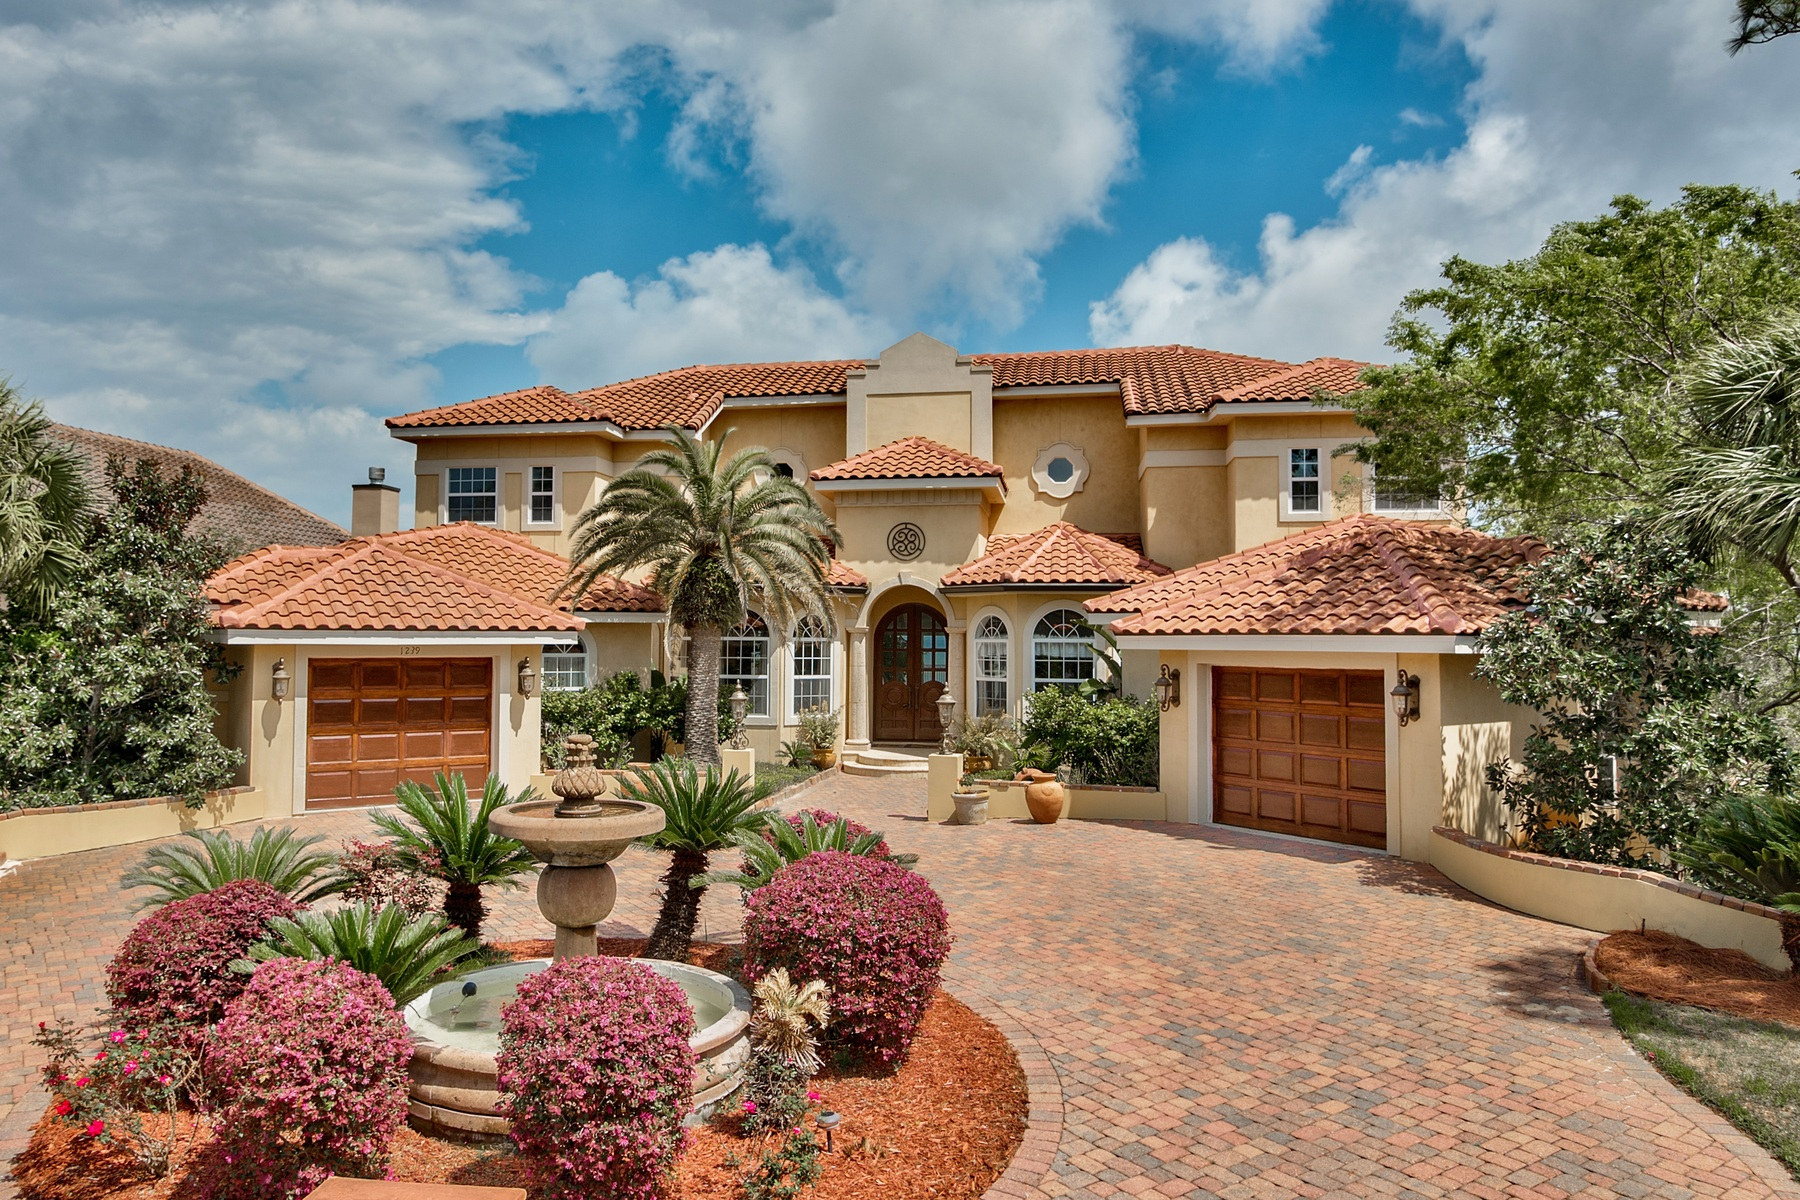 Single Family Home for Sale at MEDITERRANEAN STYLE BLENDS SEAMLESSLY WITH FLORIDA WATERFRONT LUXURY 1239 Driftwood Point Road Santa Rosa Beach, Florida, 32459 United States